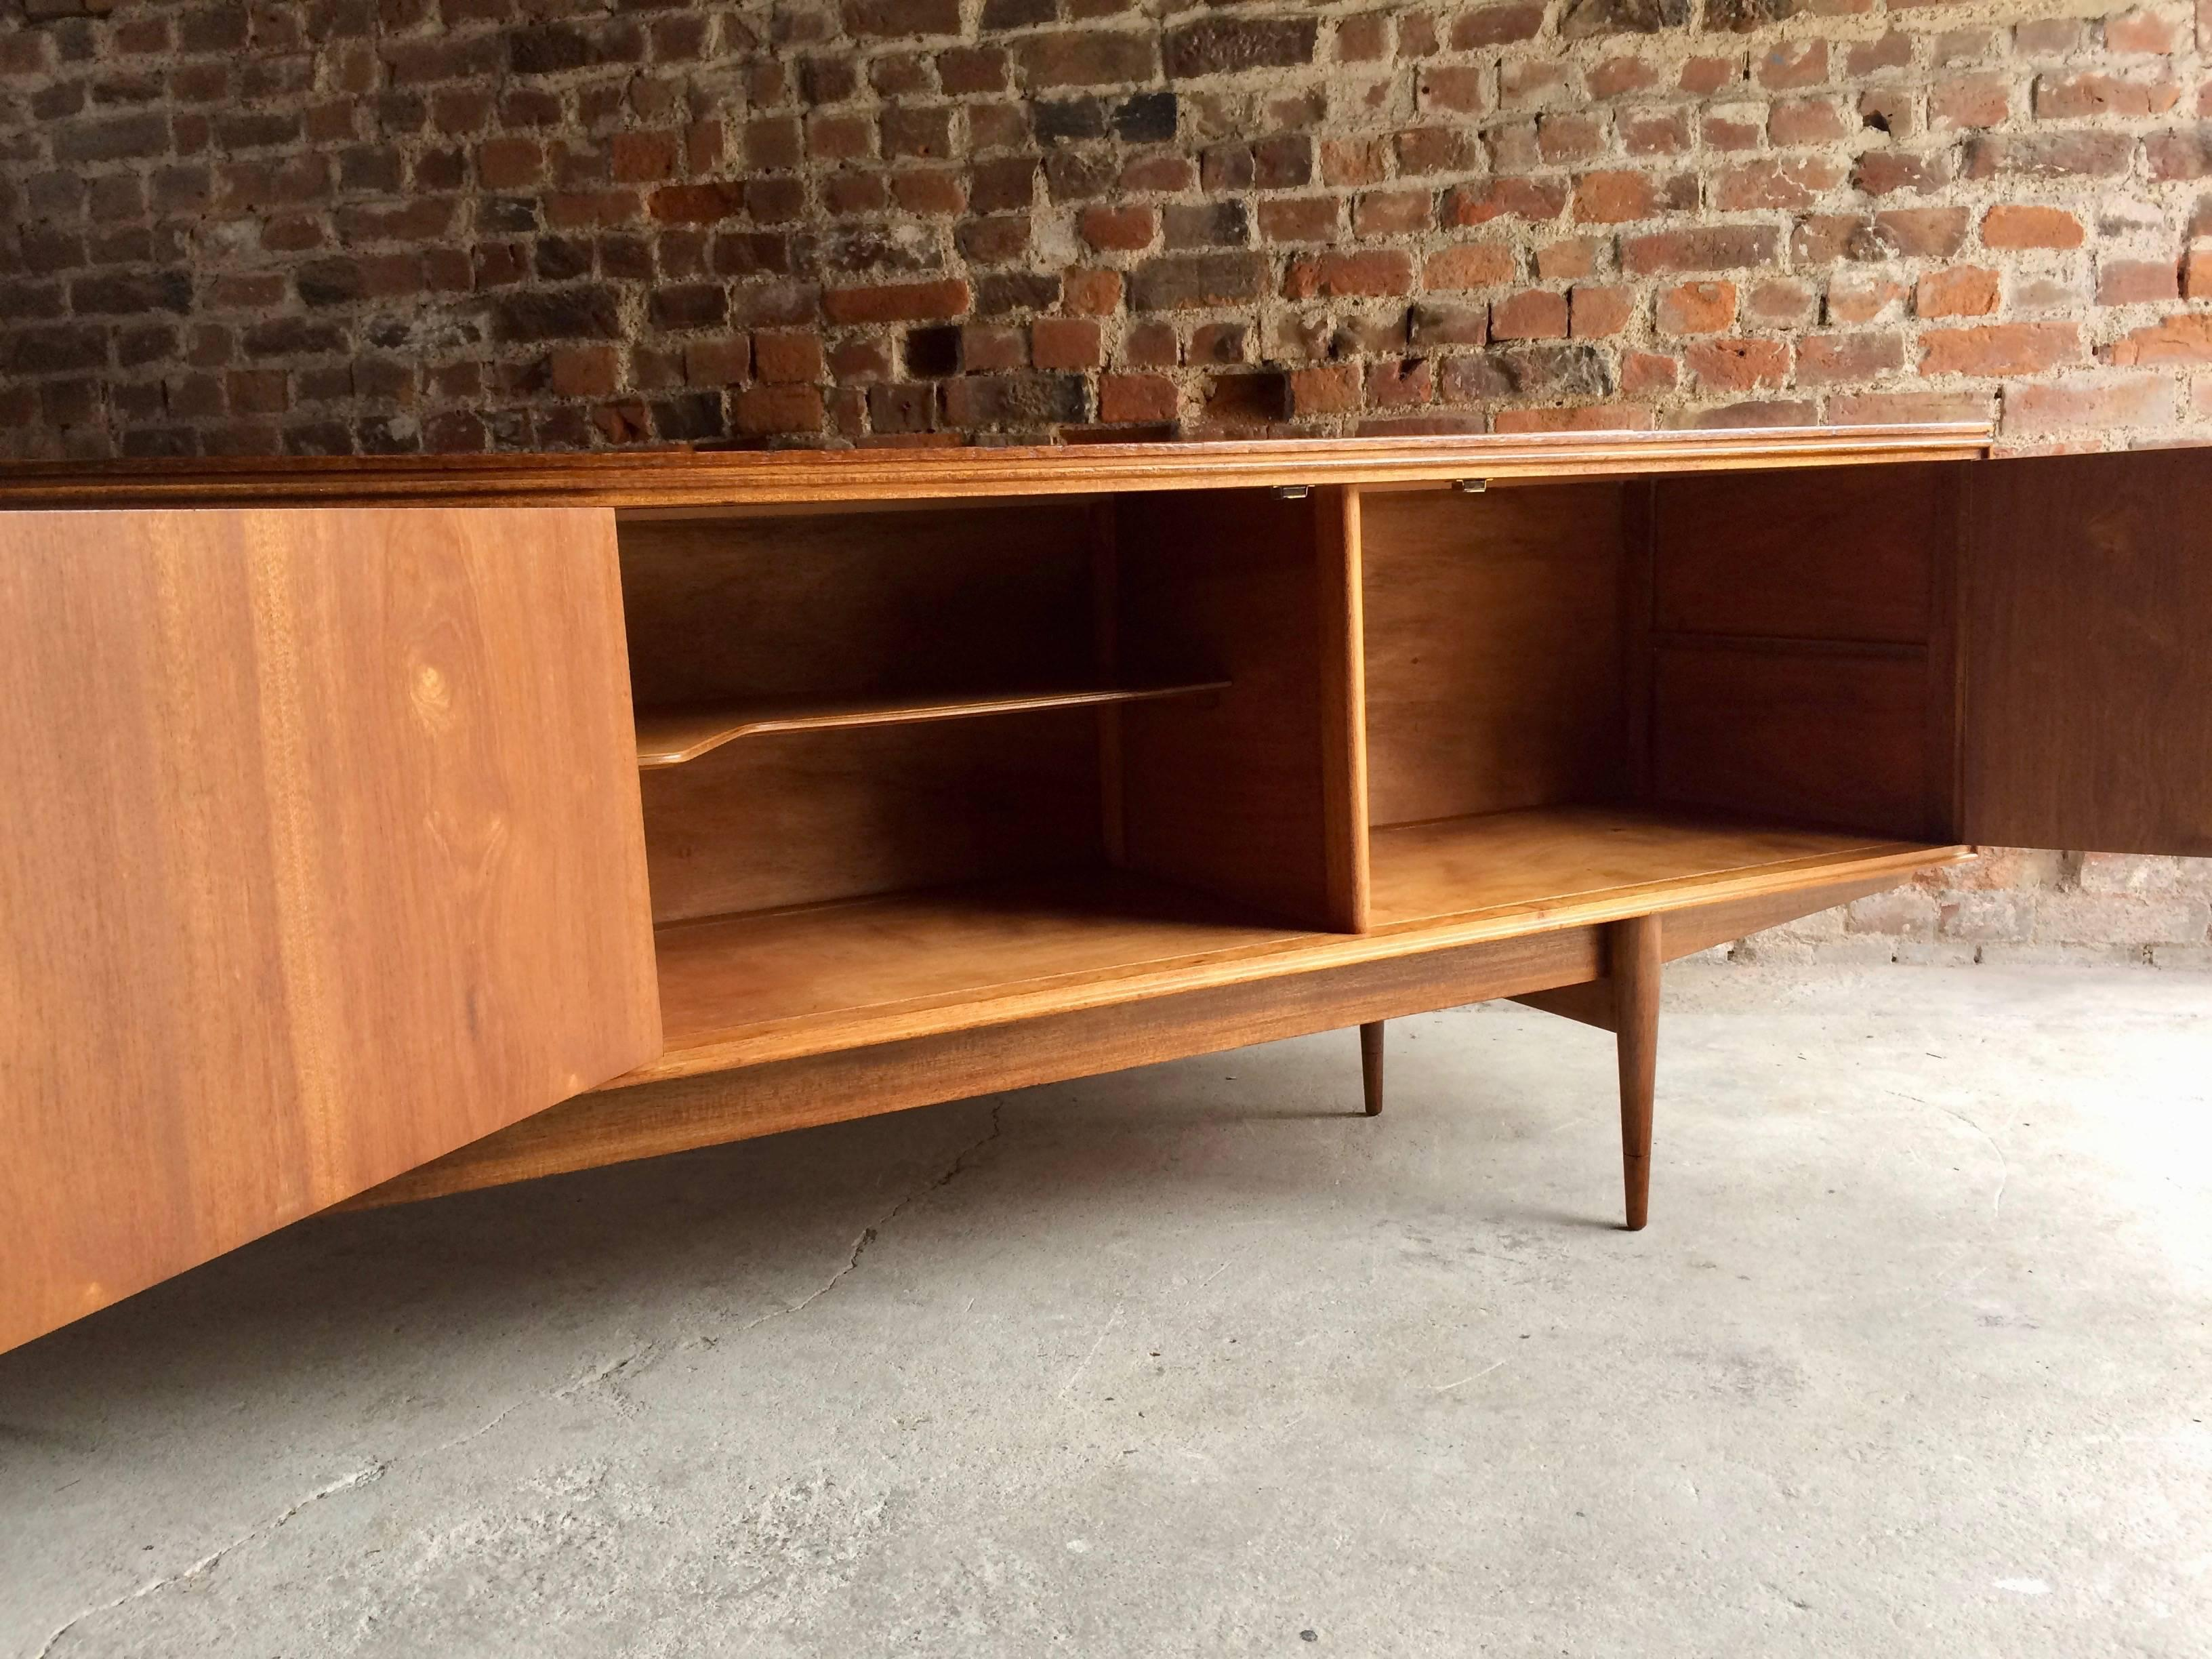 Mid Century Credenza Hamilton Sideboard, Robert Heritage For Archie Shine,  1958 In Excellent